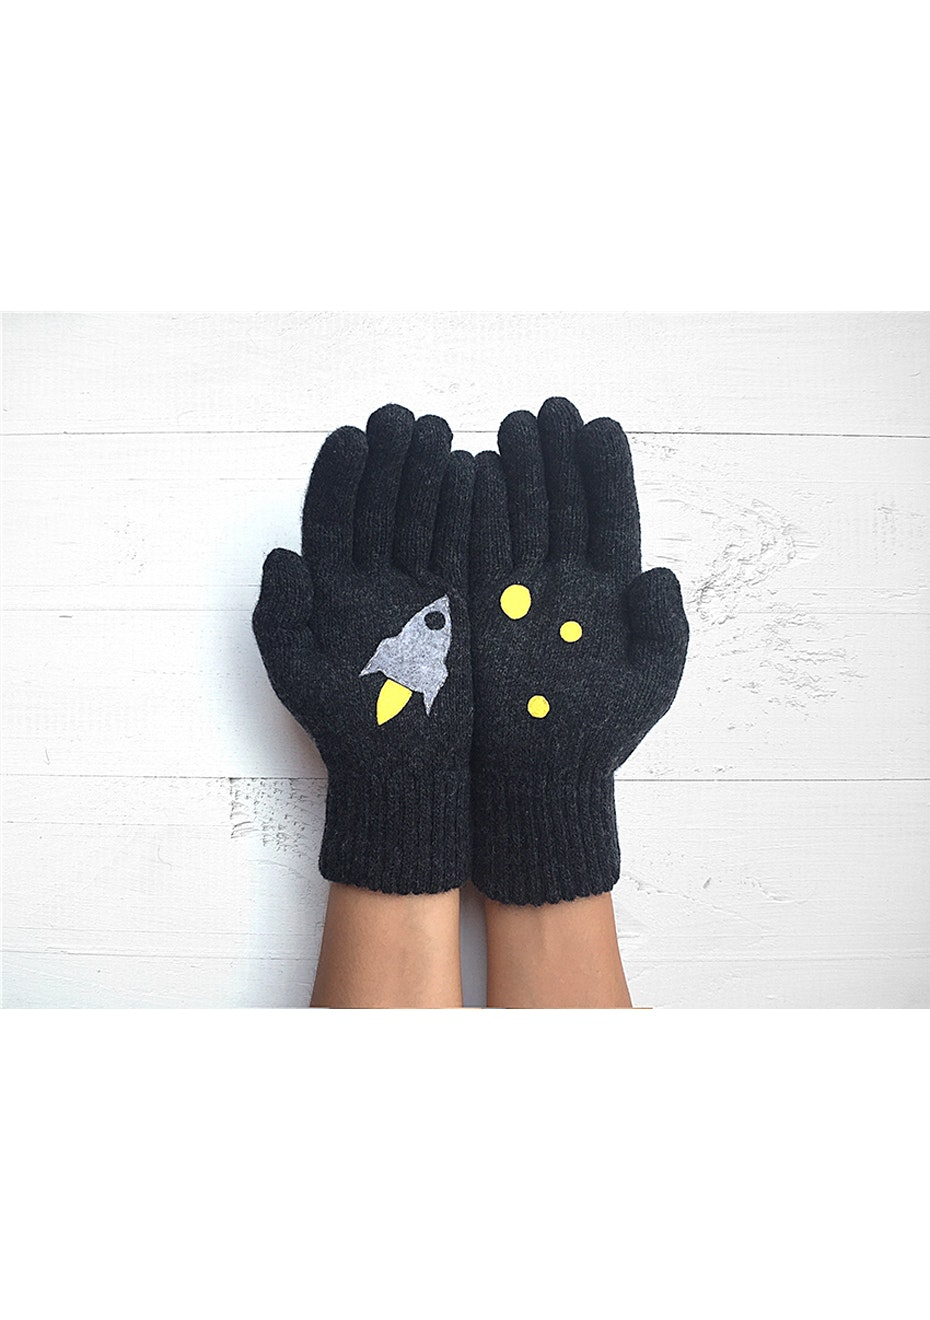 Rocket Gloves - Charcoal